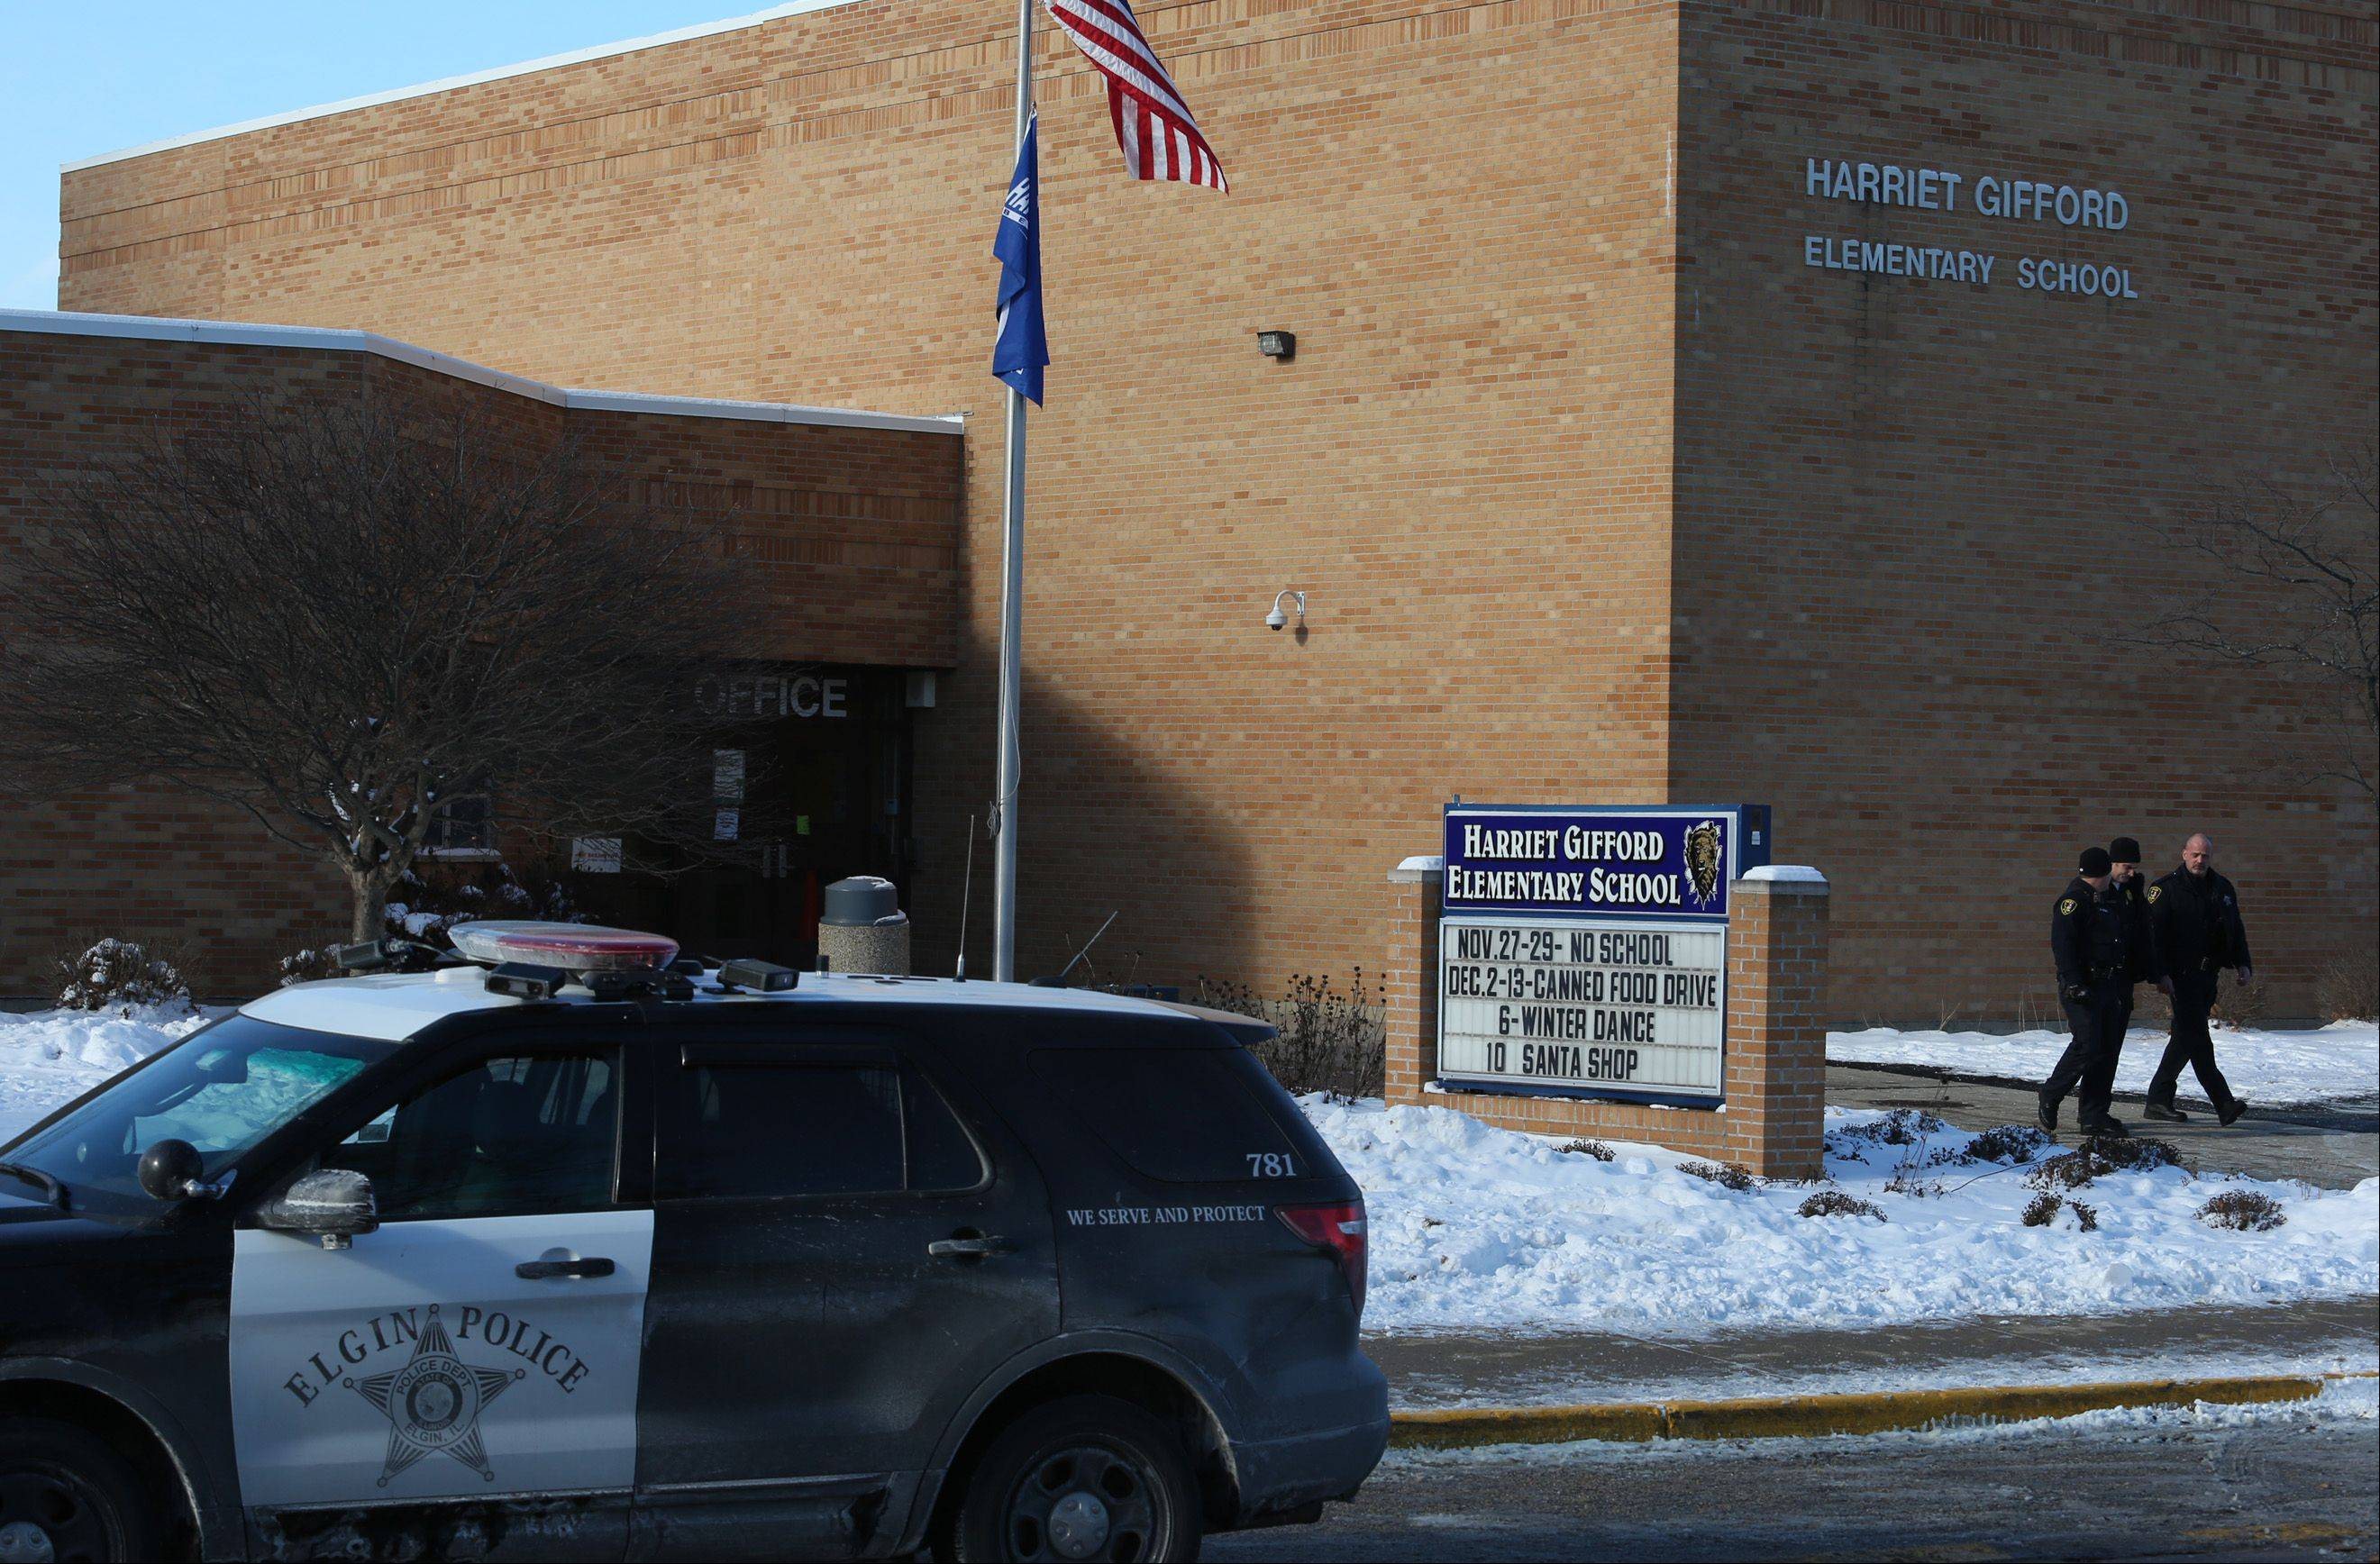 Elgin police leave Gifford Elementary School Thursday after investigating a student bringing a loaded handgun to school.